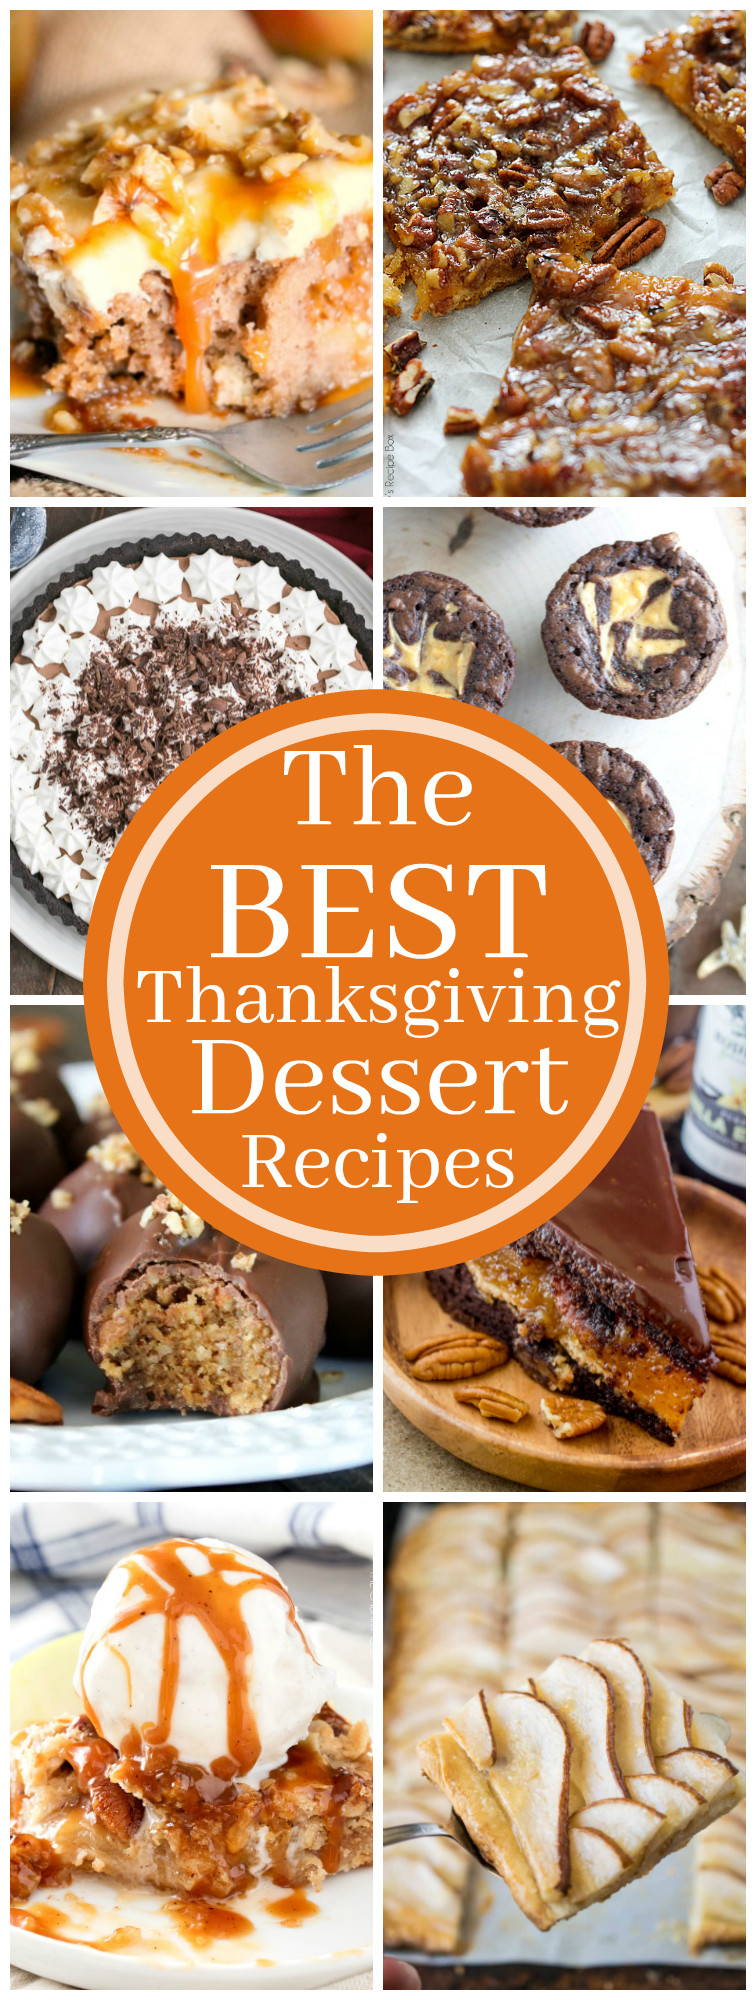 Best Thanksgiving Pies  The Best Thanksgiving Dessert Recipes The Chunky Chef